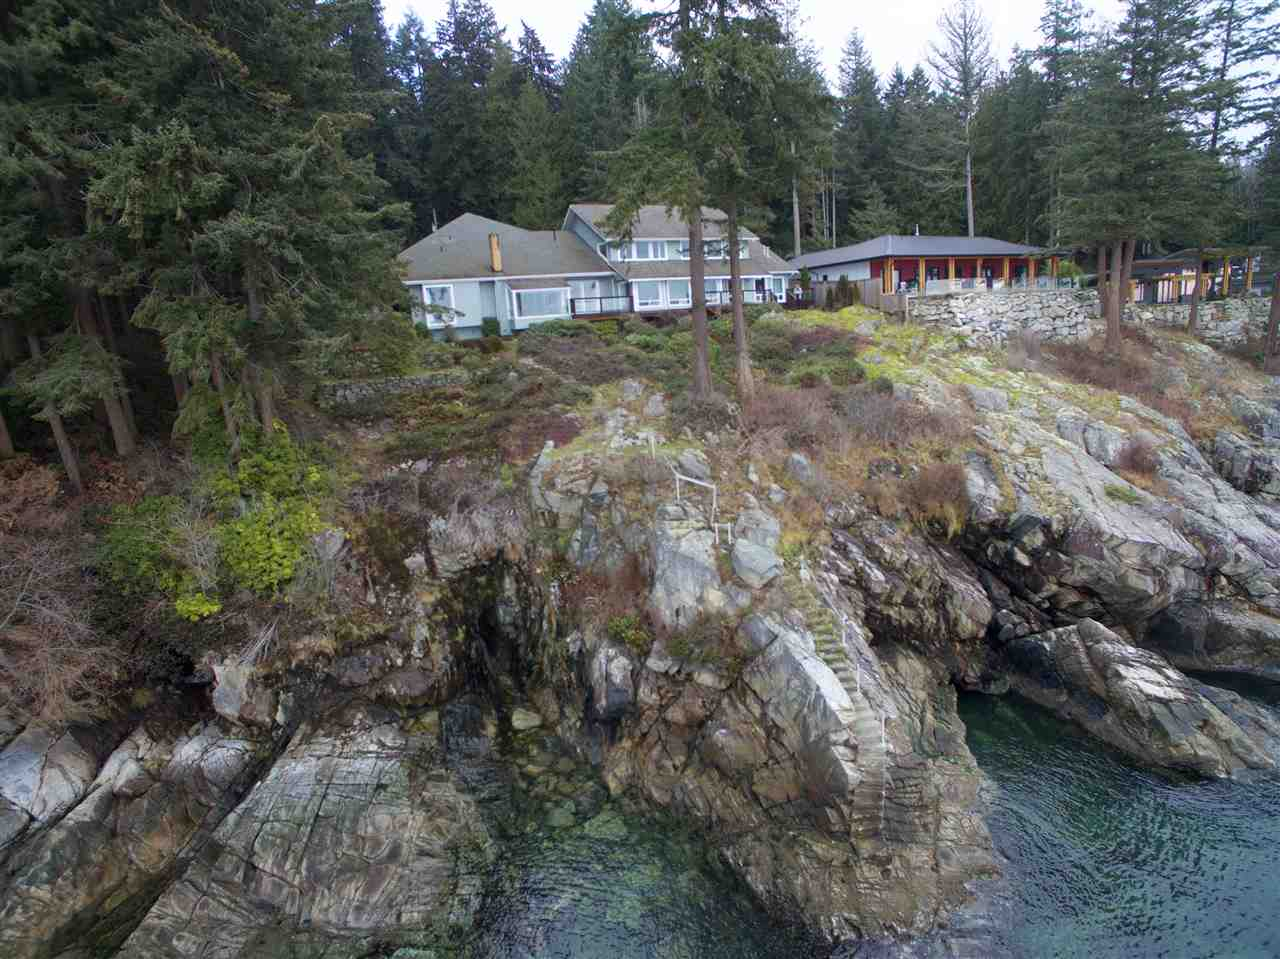 Beautiful, relaxing oceanfront Roberts Creek property. This 4.1 acre gated waterfront property offers privacy with over 200 feet of waterfront & spectacular panoramic views. The 5 bedroom custom home is designed for entertaining & features many upgrade finishing details. With a possibility of a four lot subdivision under the current zoning this offers incredible value for your money!  Call us today for all the details!